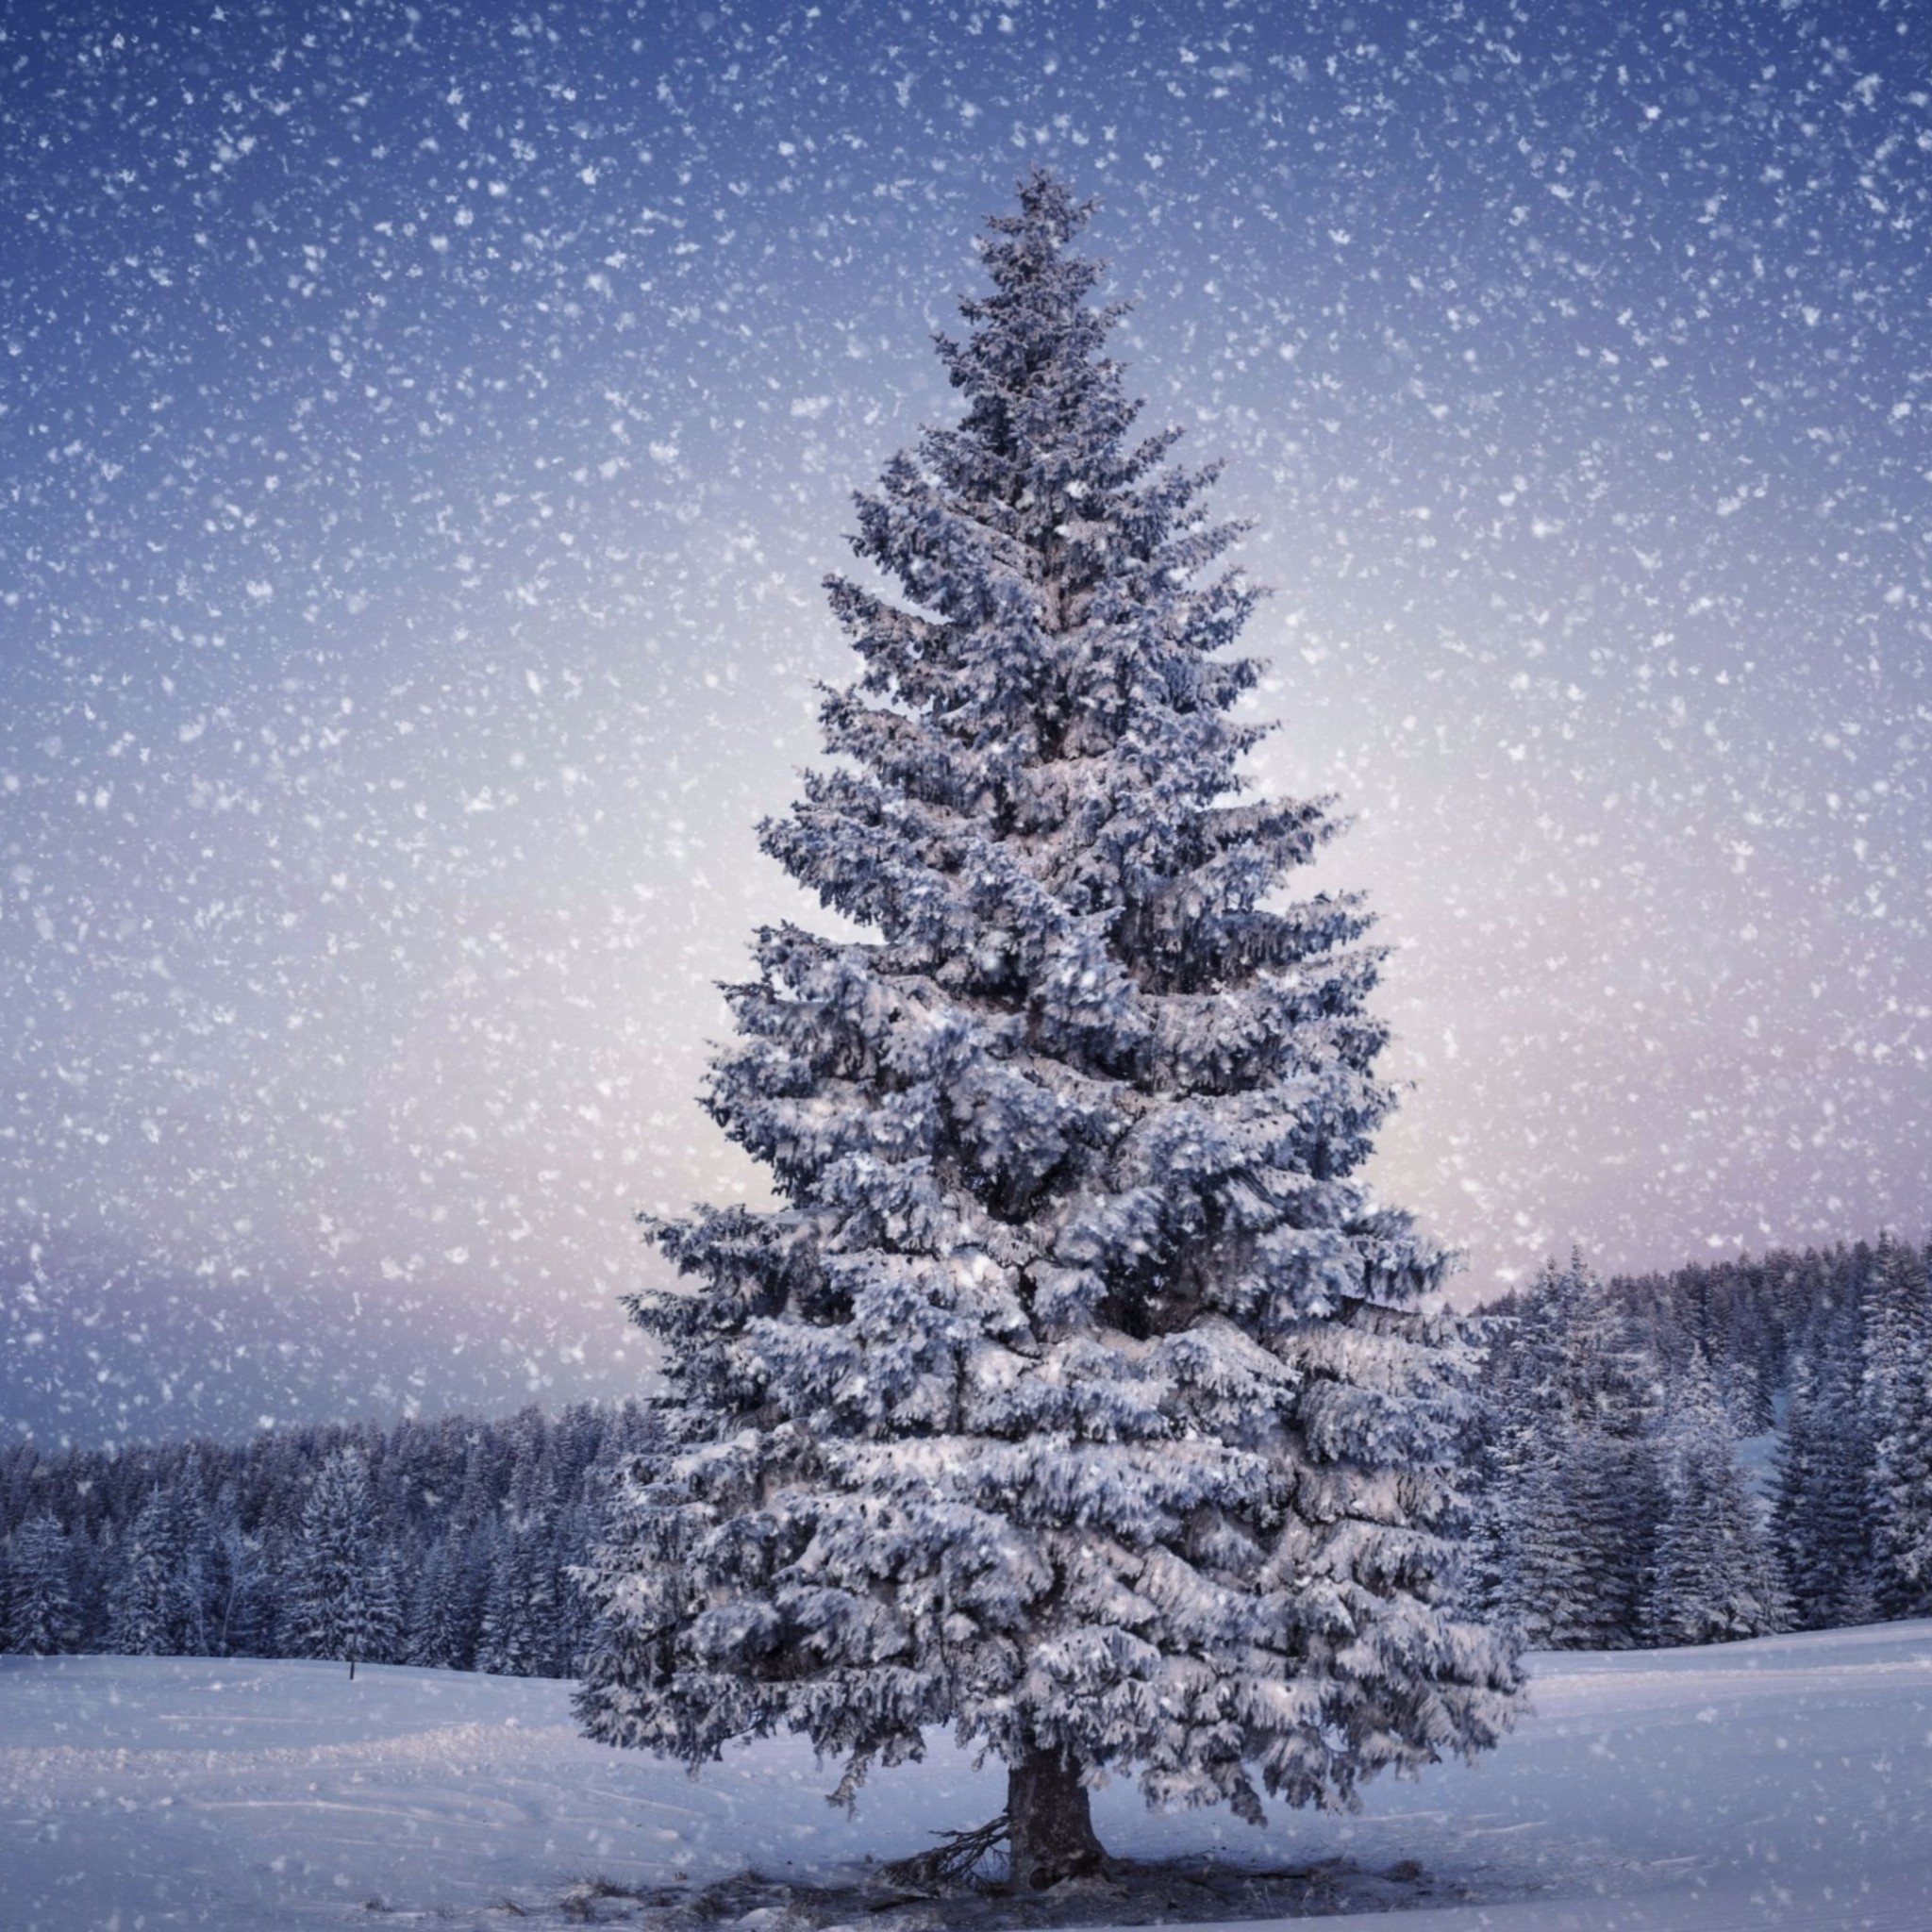 Related to Snowy 2016 Merry Christmas 4K Wallpaper